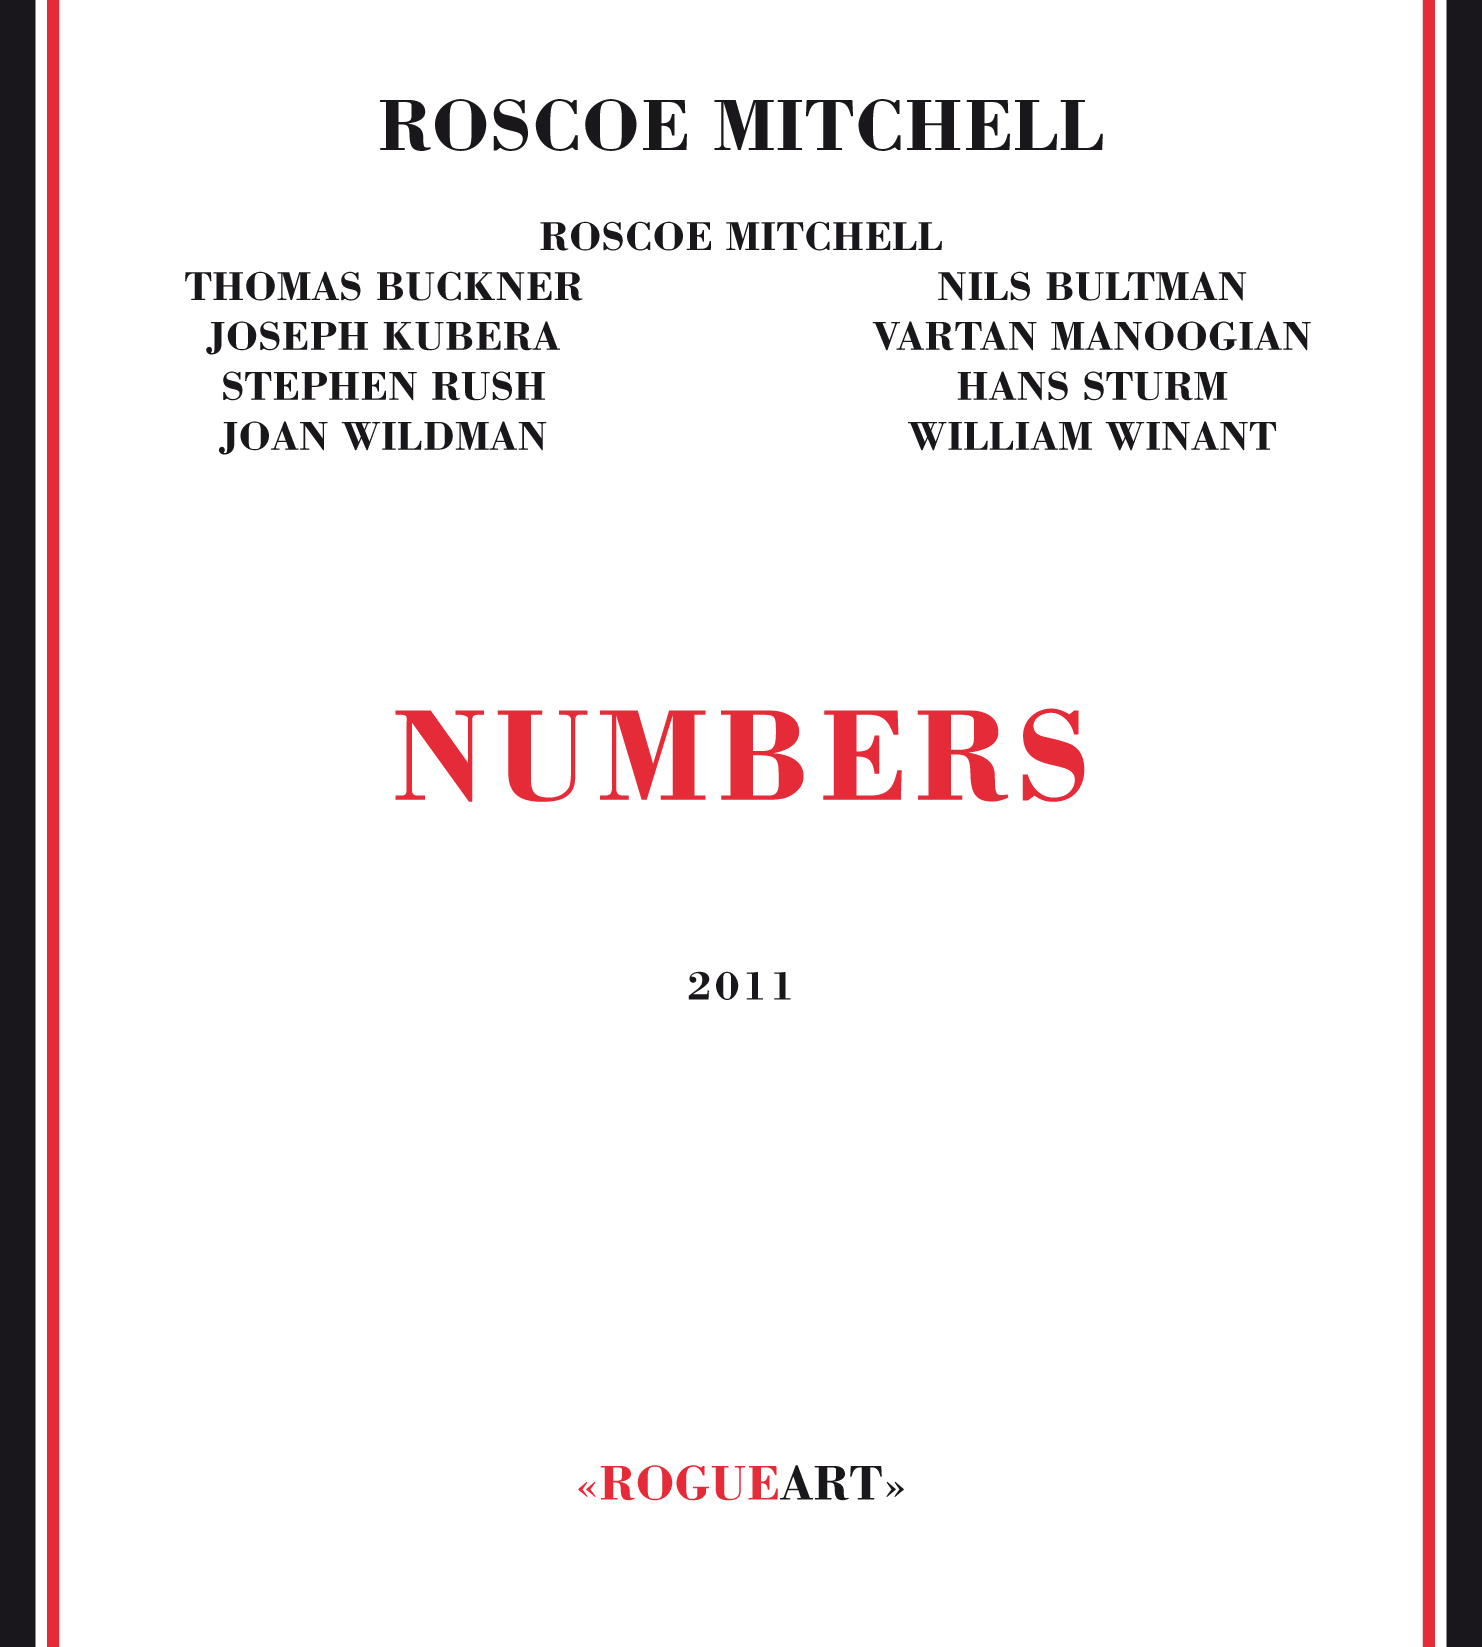 Front cover of the album NUMBERS